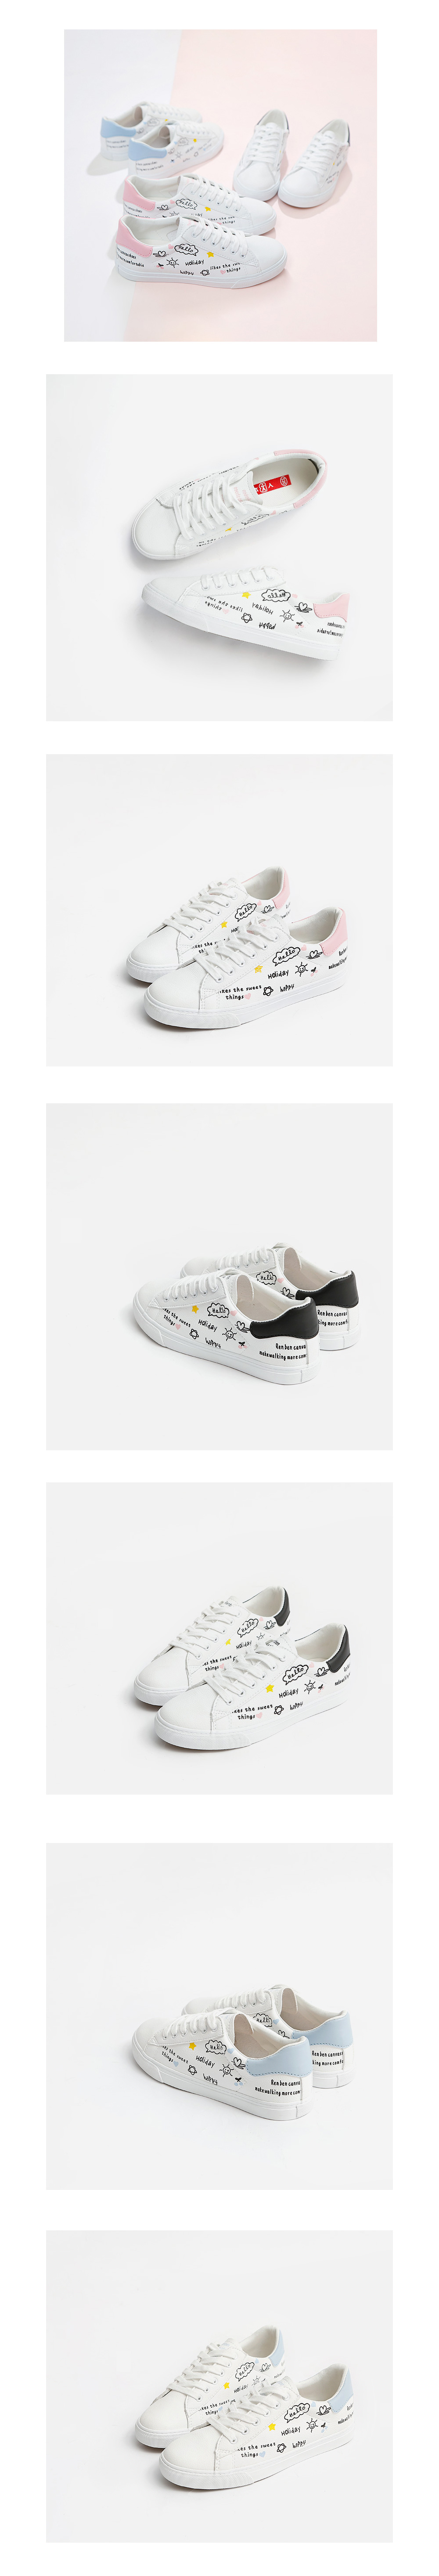 Étudiants Graffiti Lace-Up Flat Casual Shoes